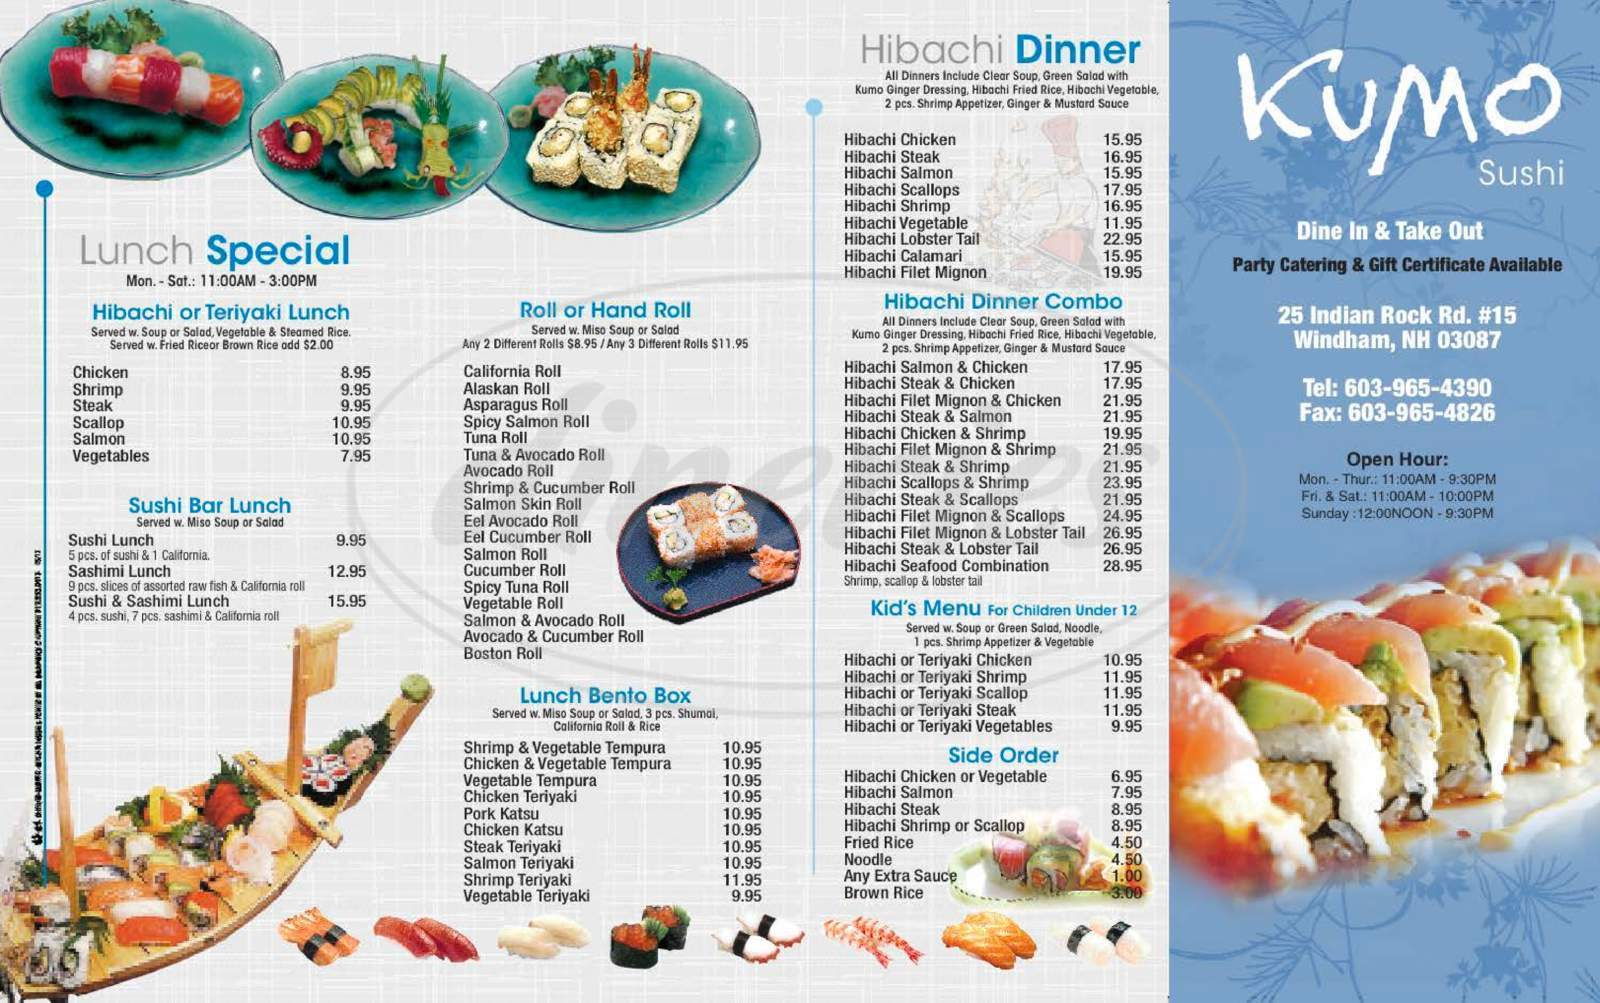 menu for Kumo Sushi & Hibachi